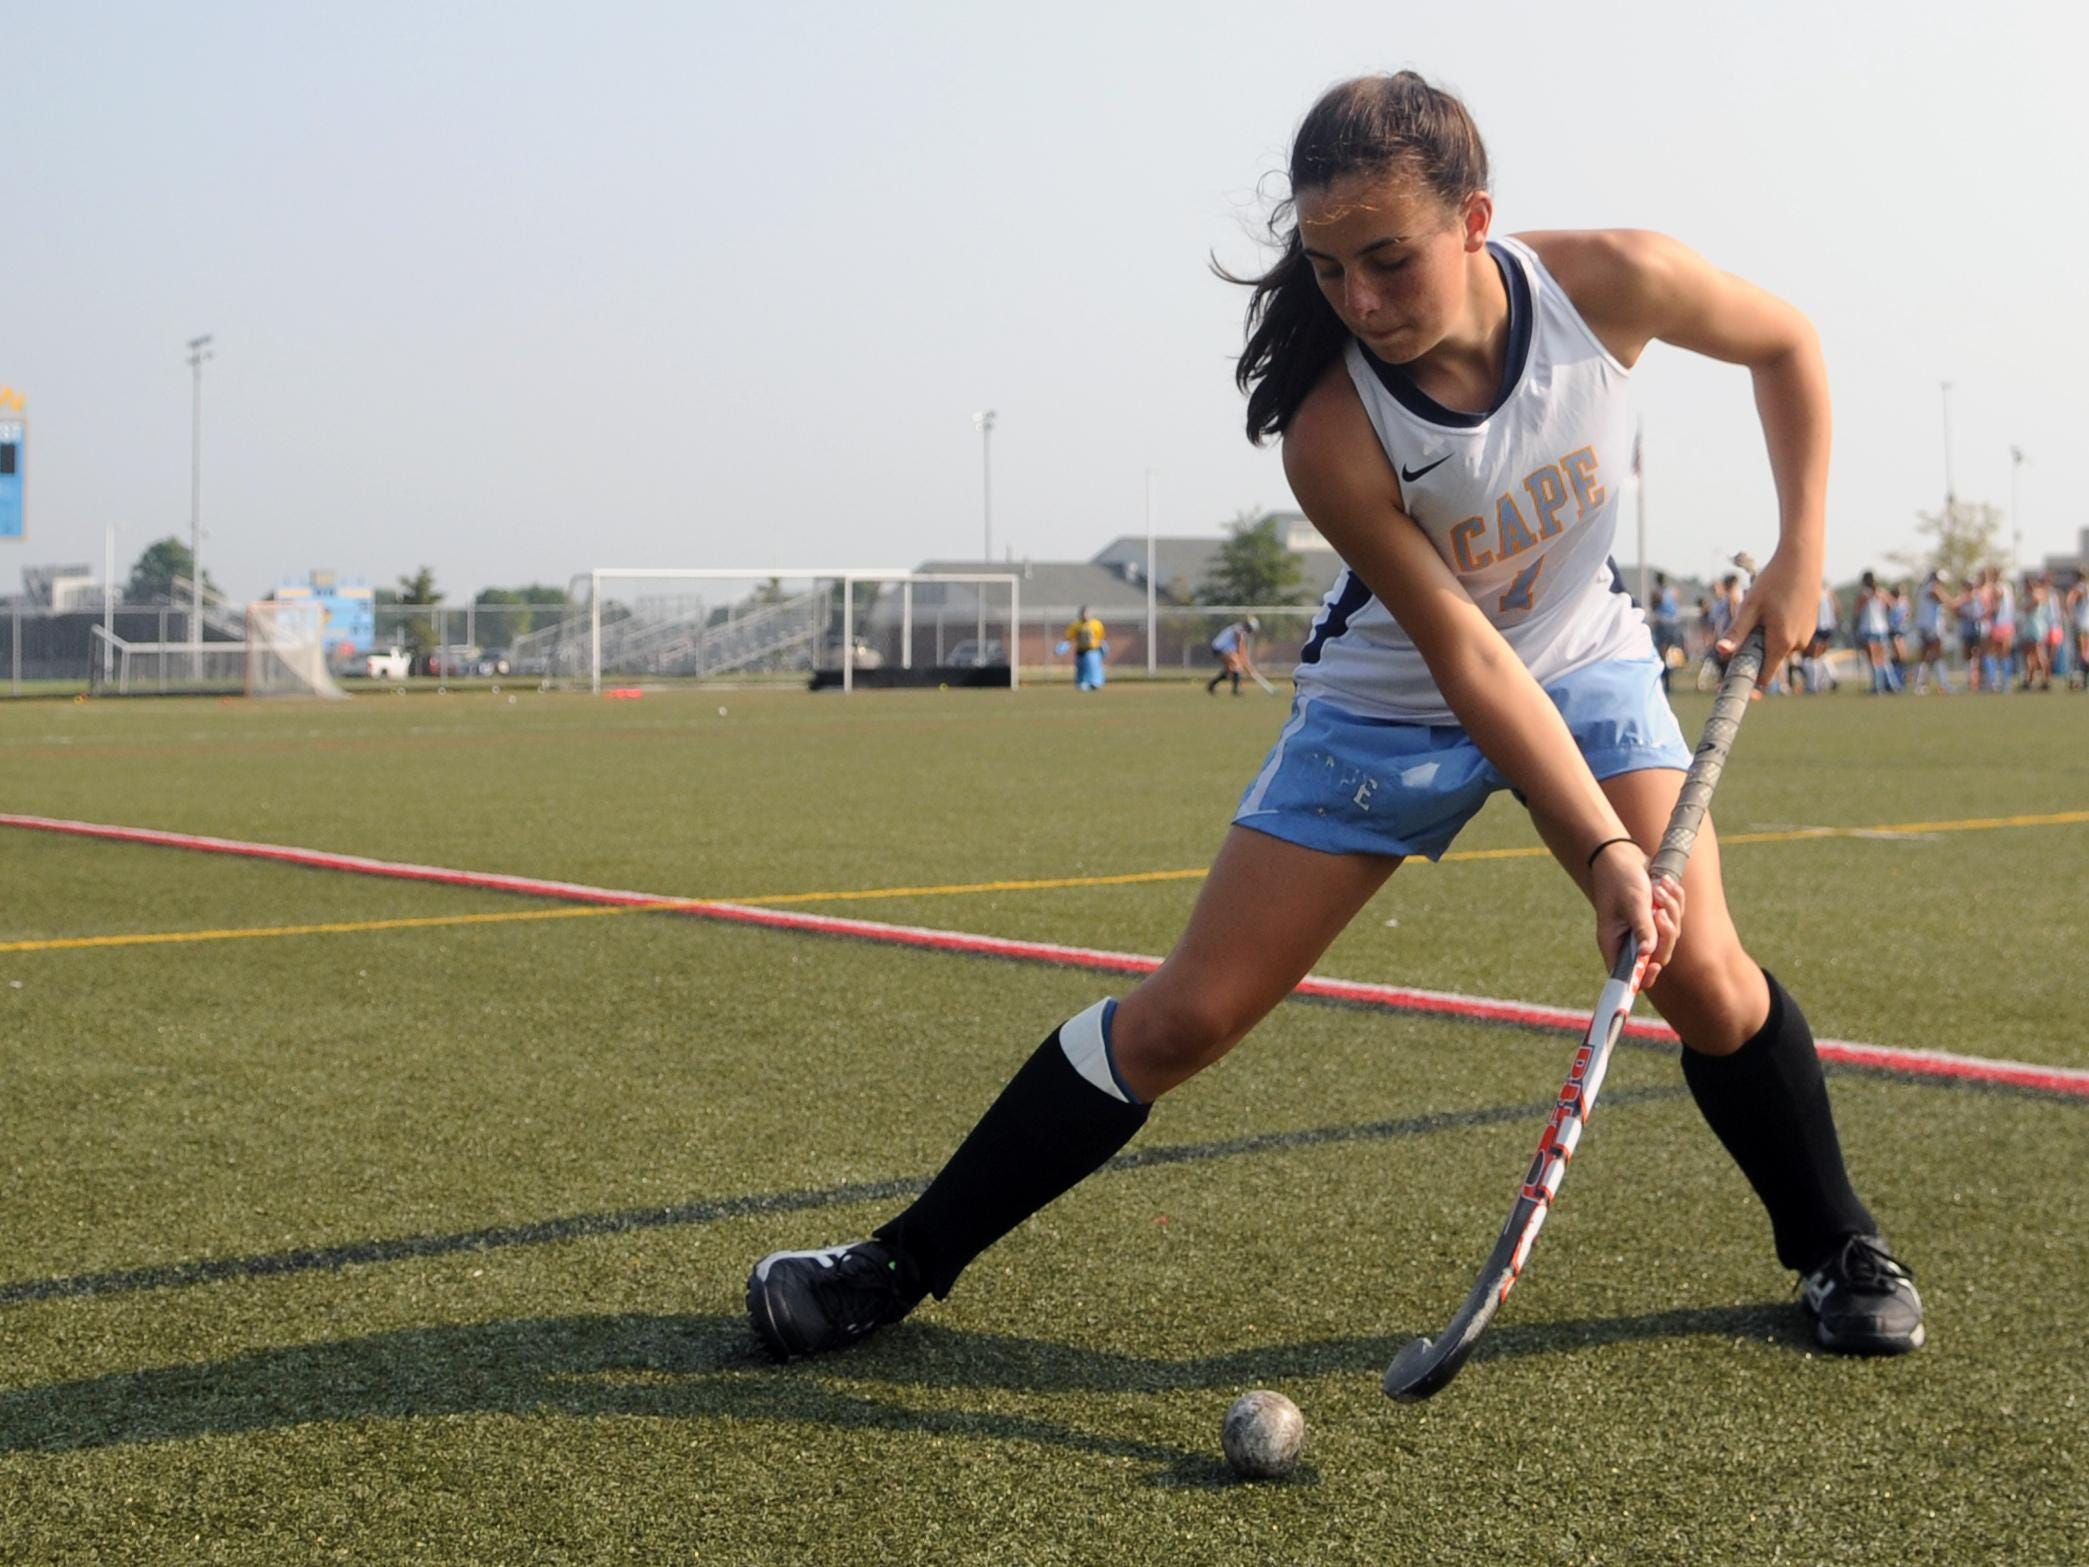 Cape Henlopen senior captain Tess Bernheimer will be a key factor in helping the Vikings to a record fifth-straight state title.